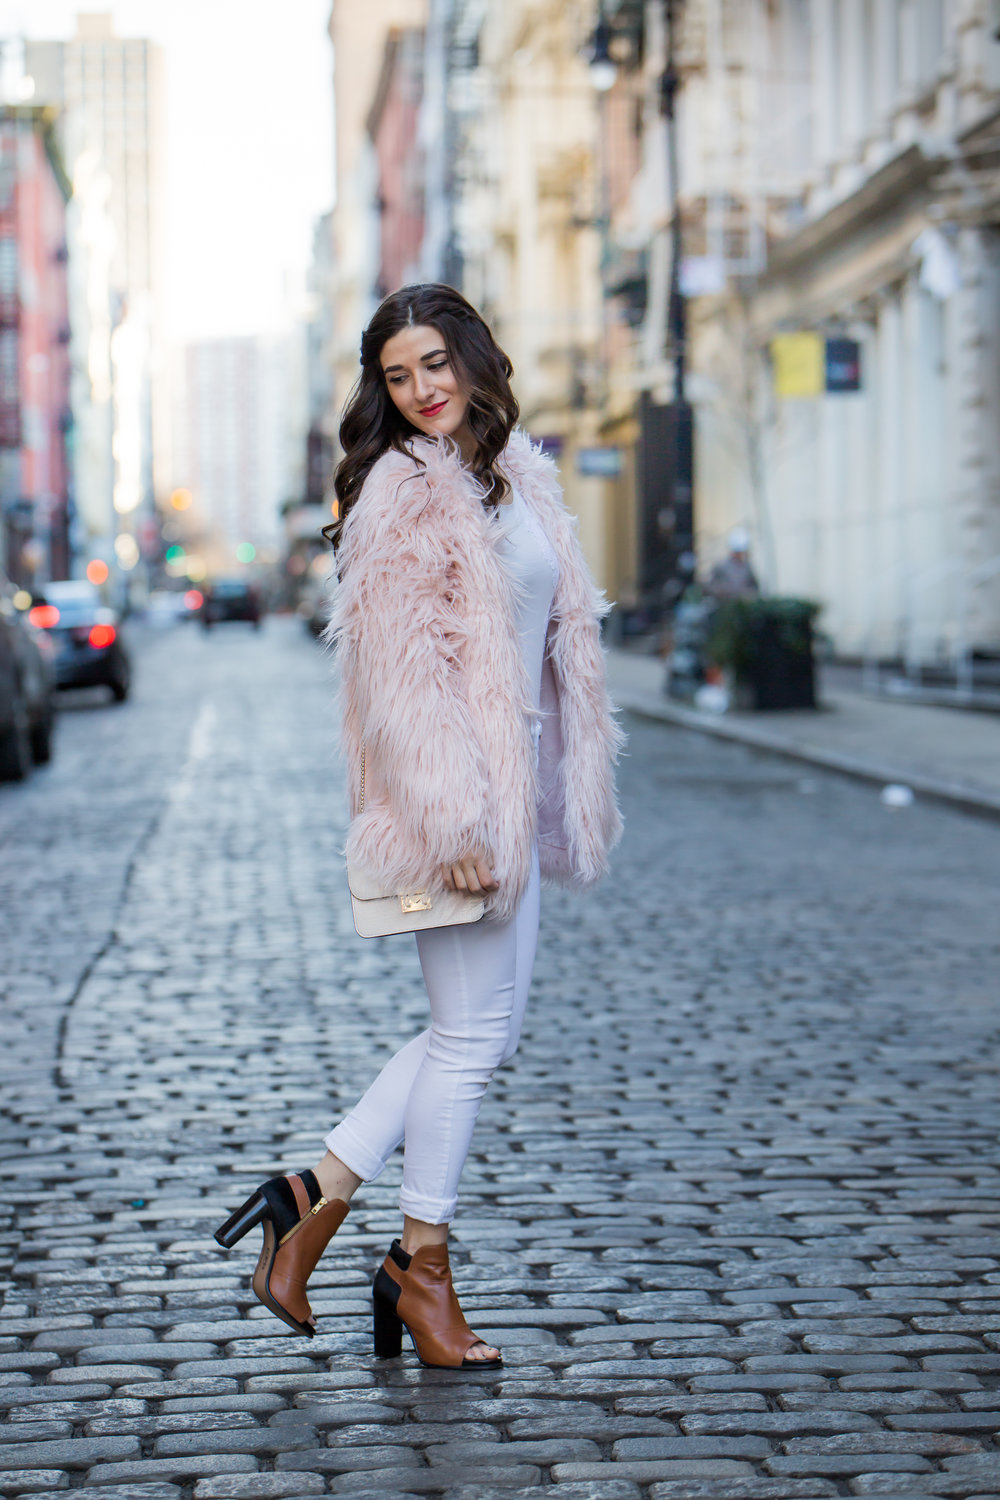 Pink Faux Fur Jacket White Jeans The Best Career Advice Esther Santer Fashion Blog NYC Street Style Blogger Outfit OOTD Trendy Winter Whites Henri Bendel Bag Tan Booties Girl Women Shop Sale Hair Shoes What To Wear Wearing Model Accessories Photoshoot.jpg